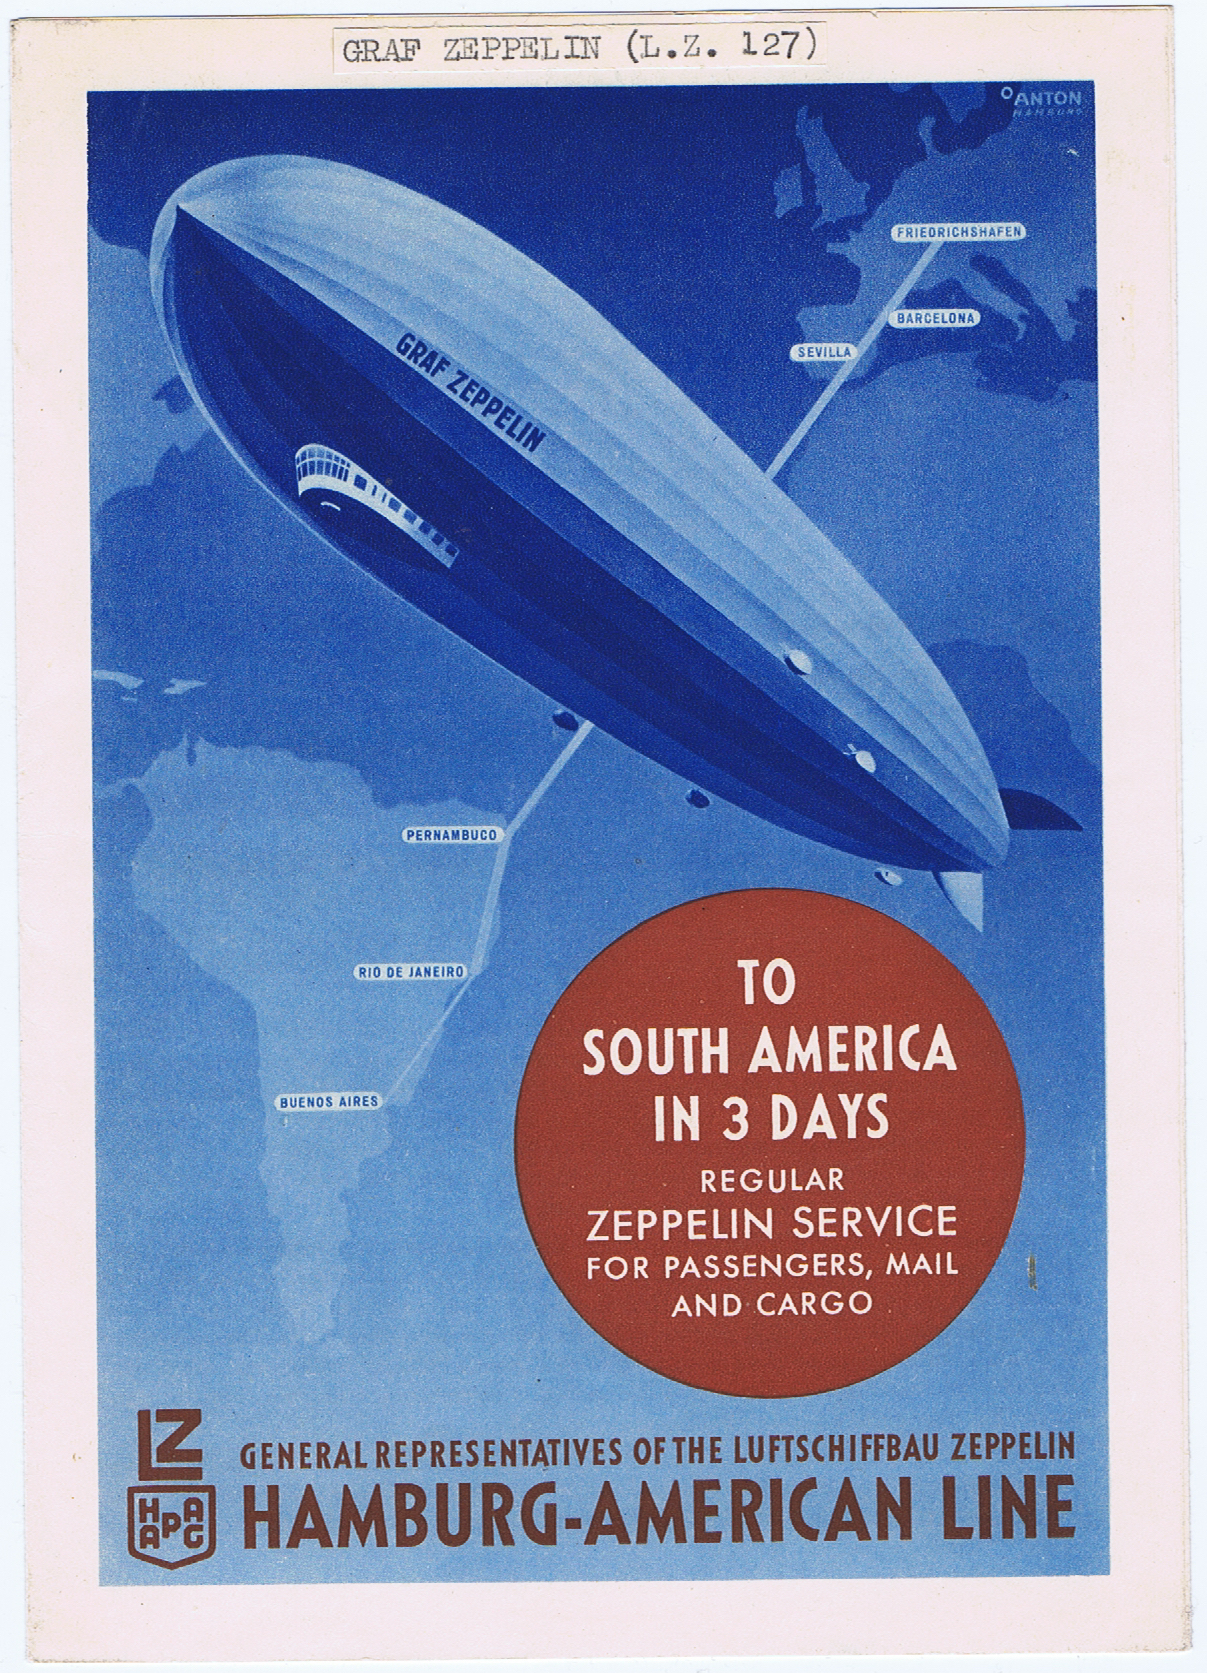 J767GRAF ZEPPELIN - TO SOUTH AMERICA IN 3 DAYS